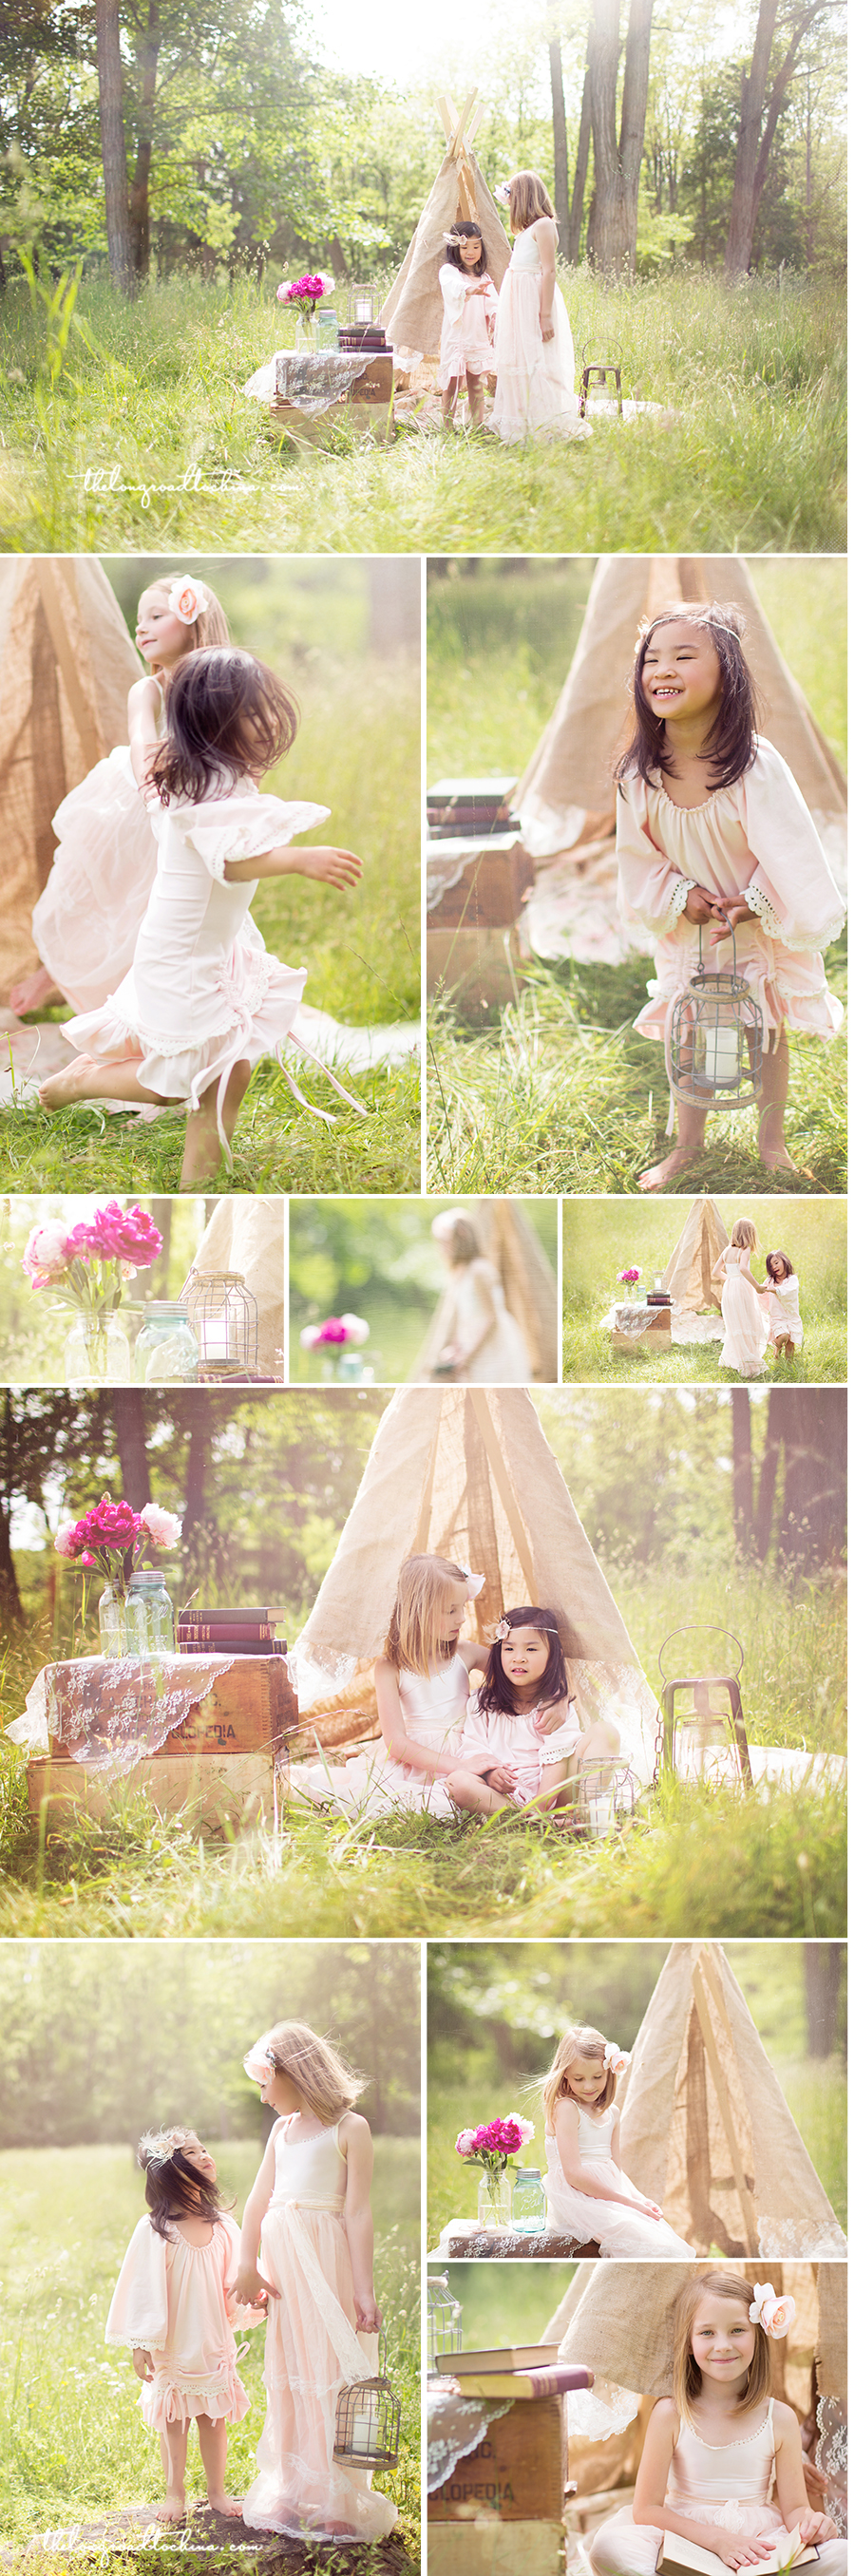 BlogCollage Tee Pee 1